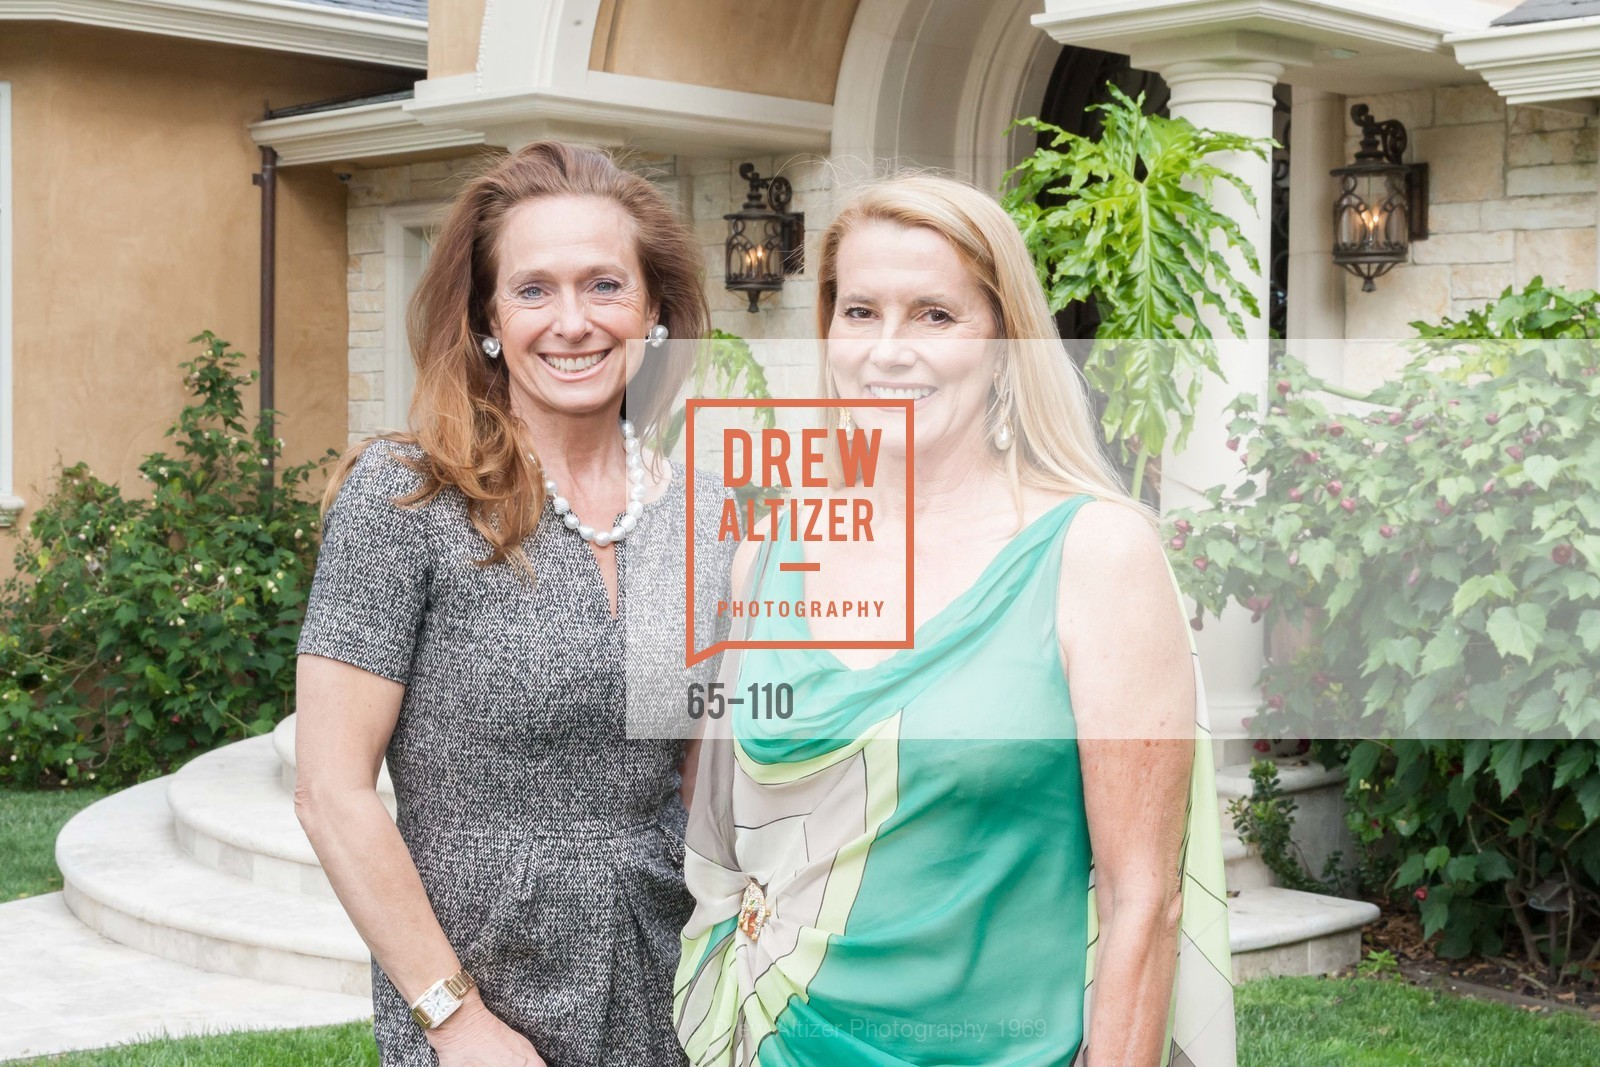 Elisabeth Thieriot, Christina DeLimur, LYME AID 2015 Benefiting the Bay Area Lyme Foundation, Private Residence, May 16th, 2015,Drew Altizer, Drew Altizer Photography, full-service agency, private events, San Francisco photographer, photographer california